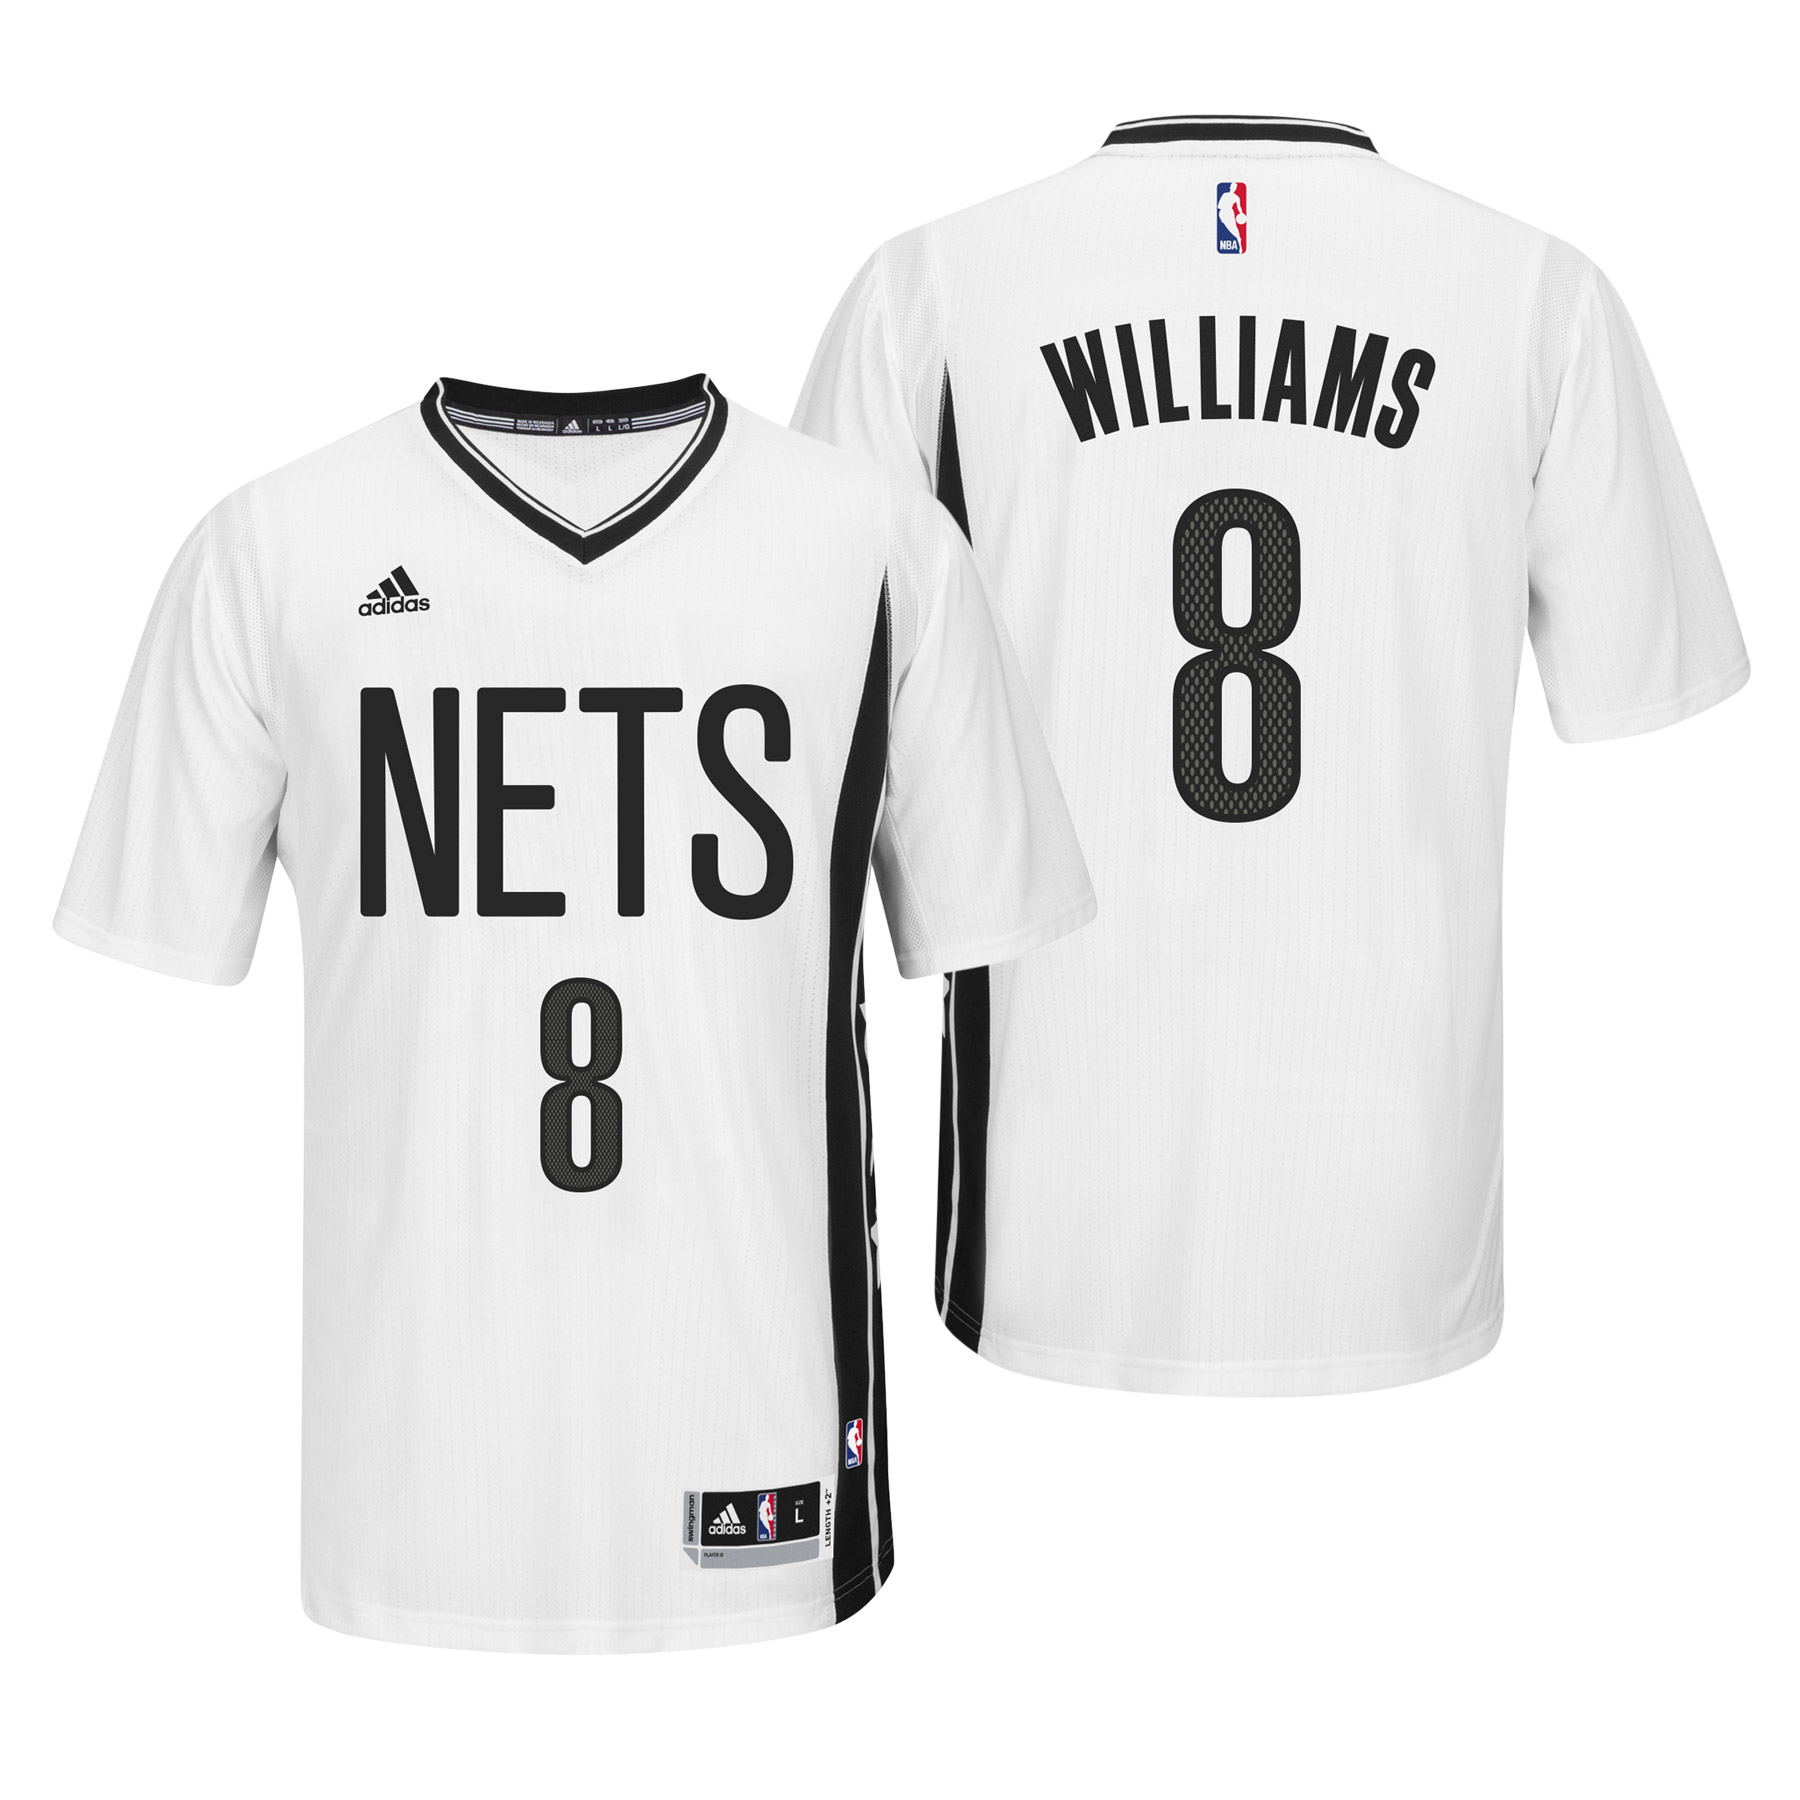 Brooklyn Nets Pride Swingman Jersey - Deron Williams - Mens